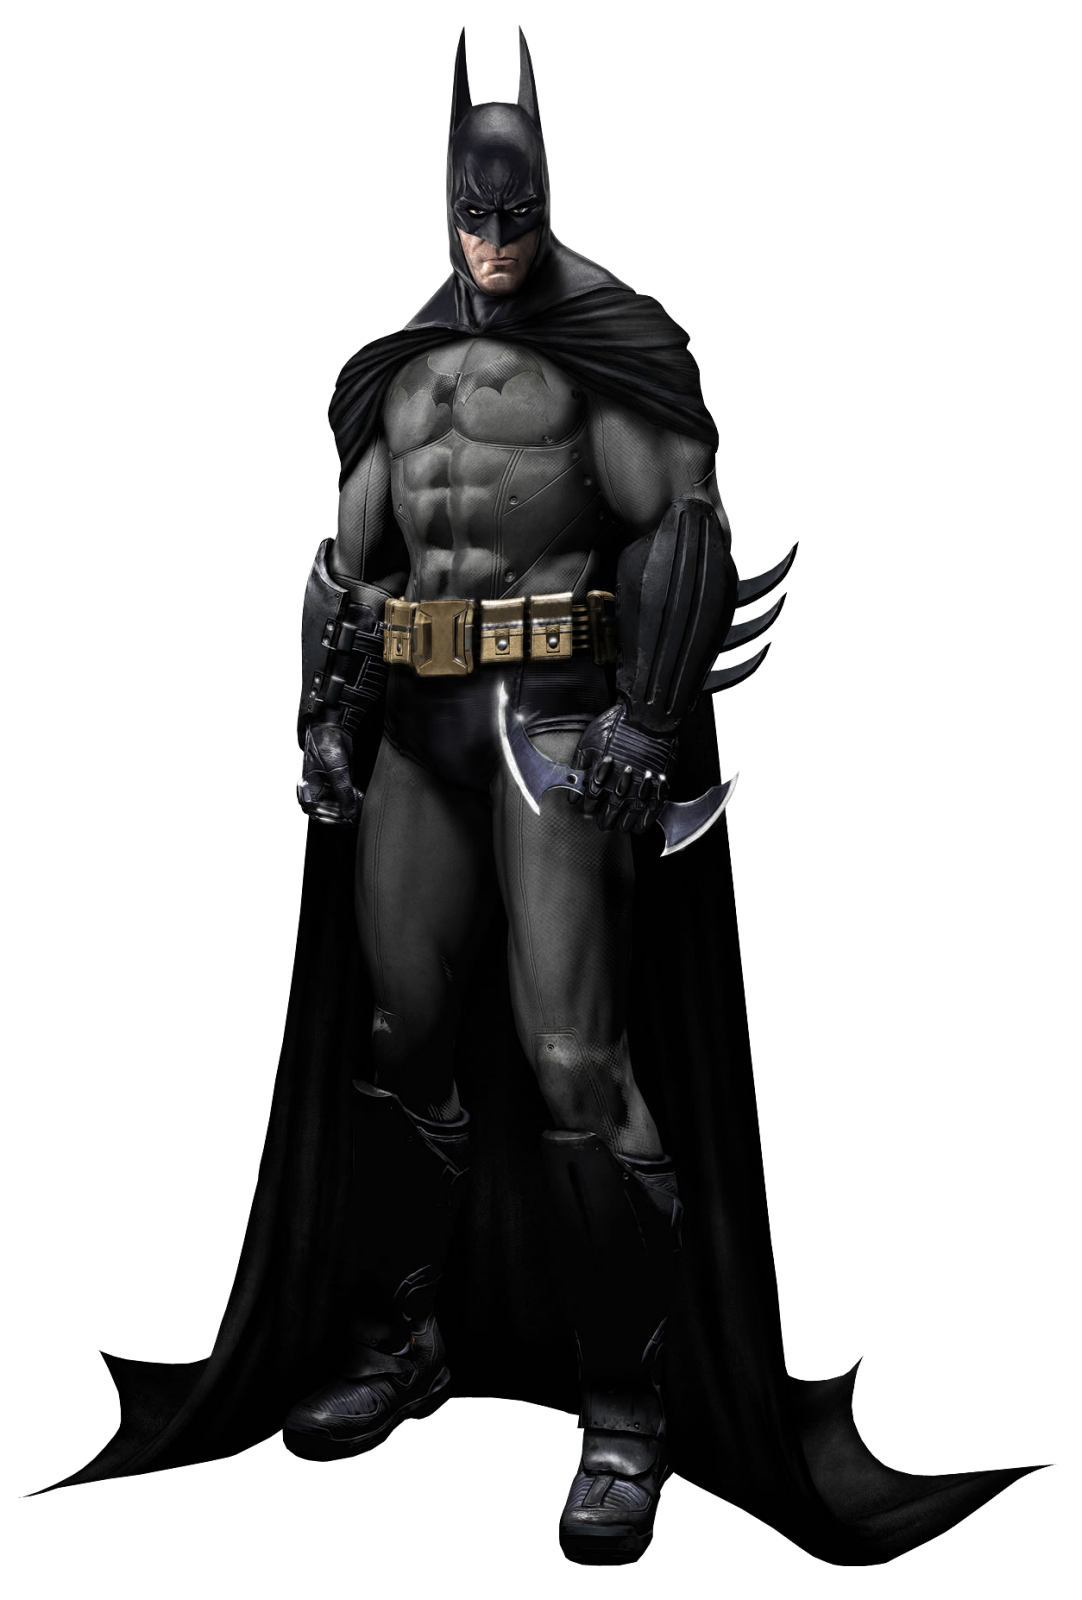 Batman PNG Transparent Image - Batman PNG